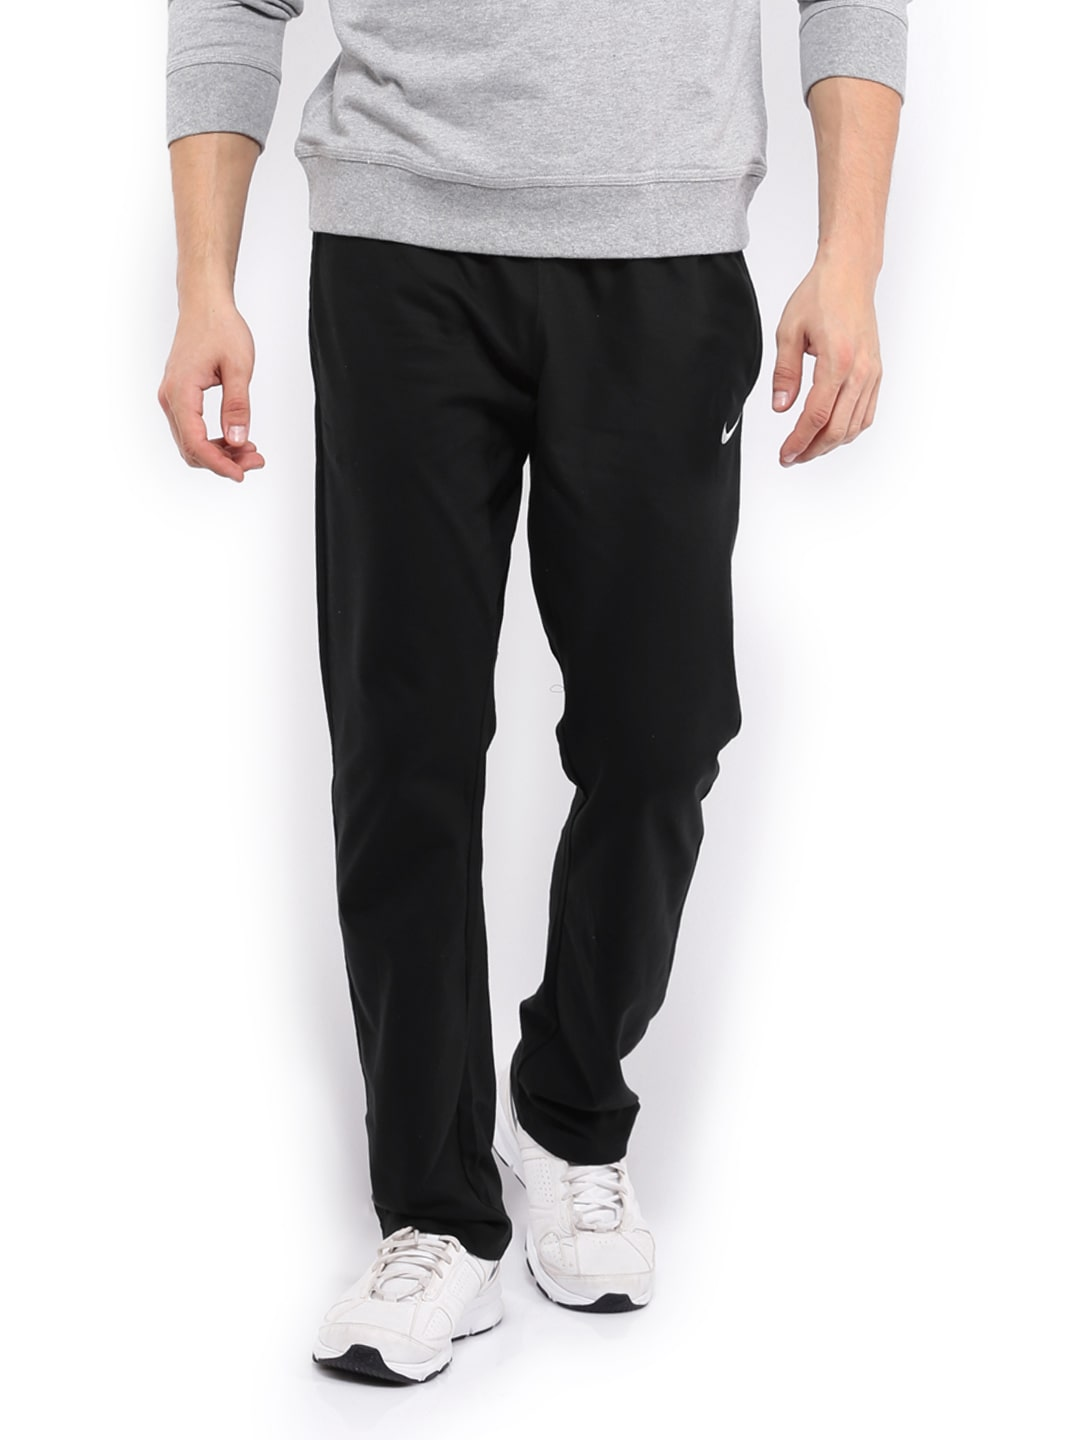 Lastest NIKE As Nike LegA Leggings  Buy Women39s Track Pants Online In India